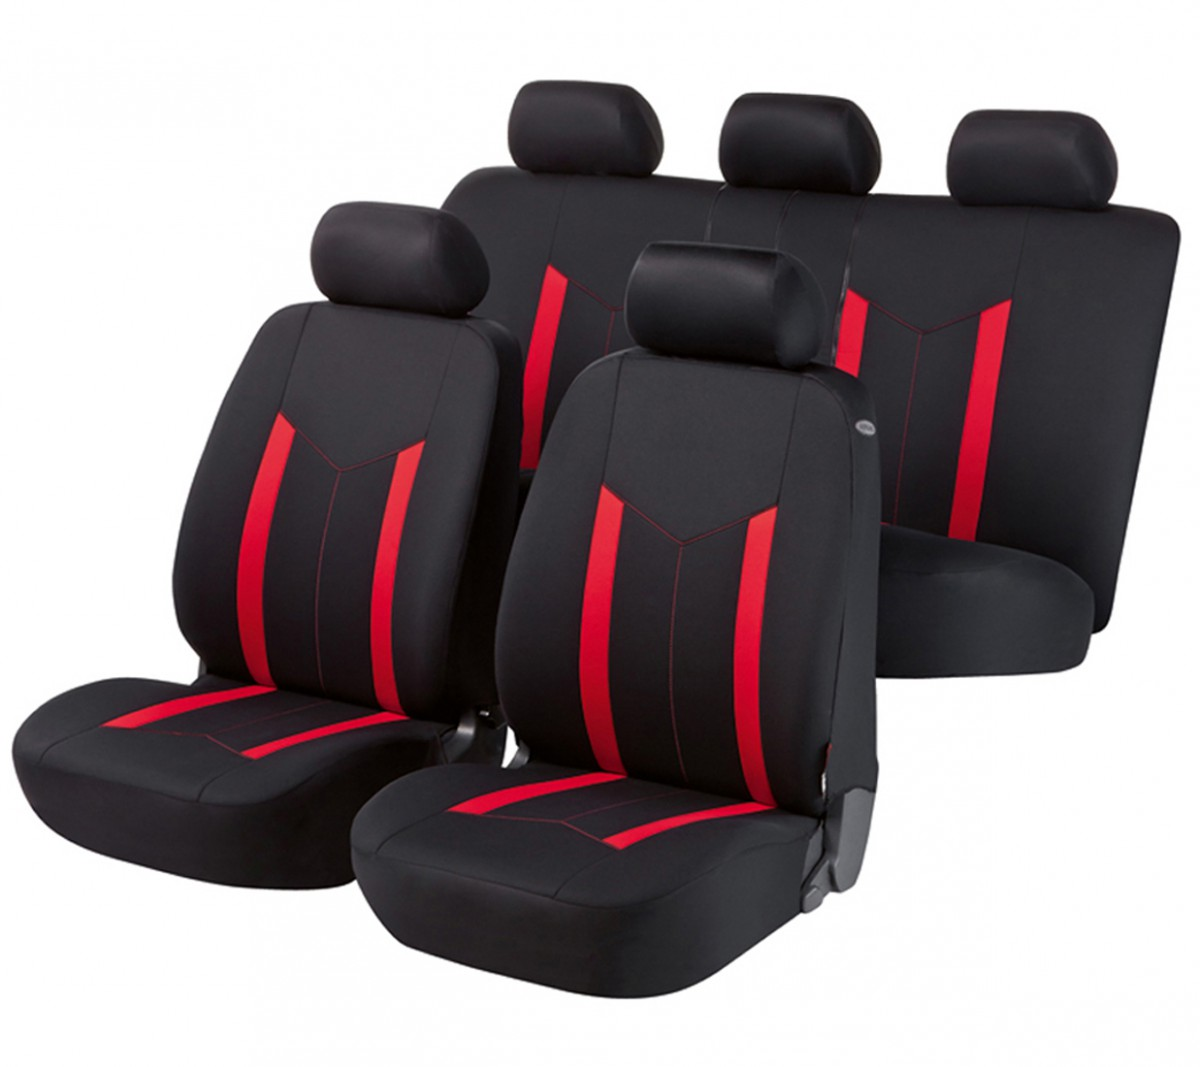 Ford Focus Car Seat Covers Proven Quality